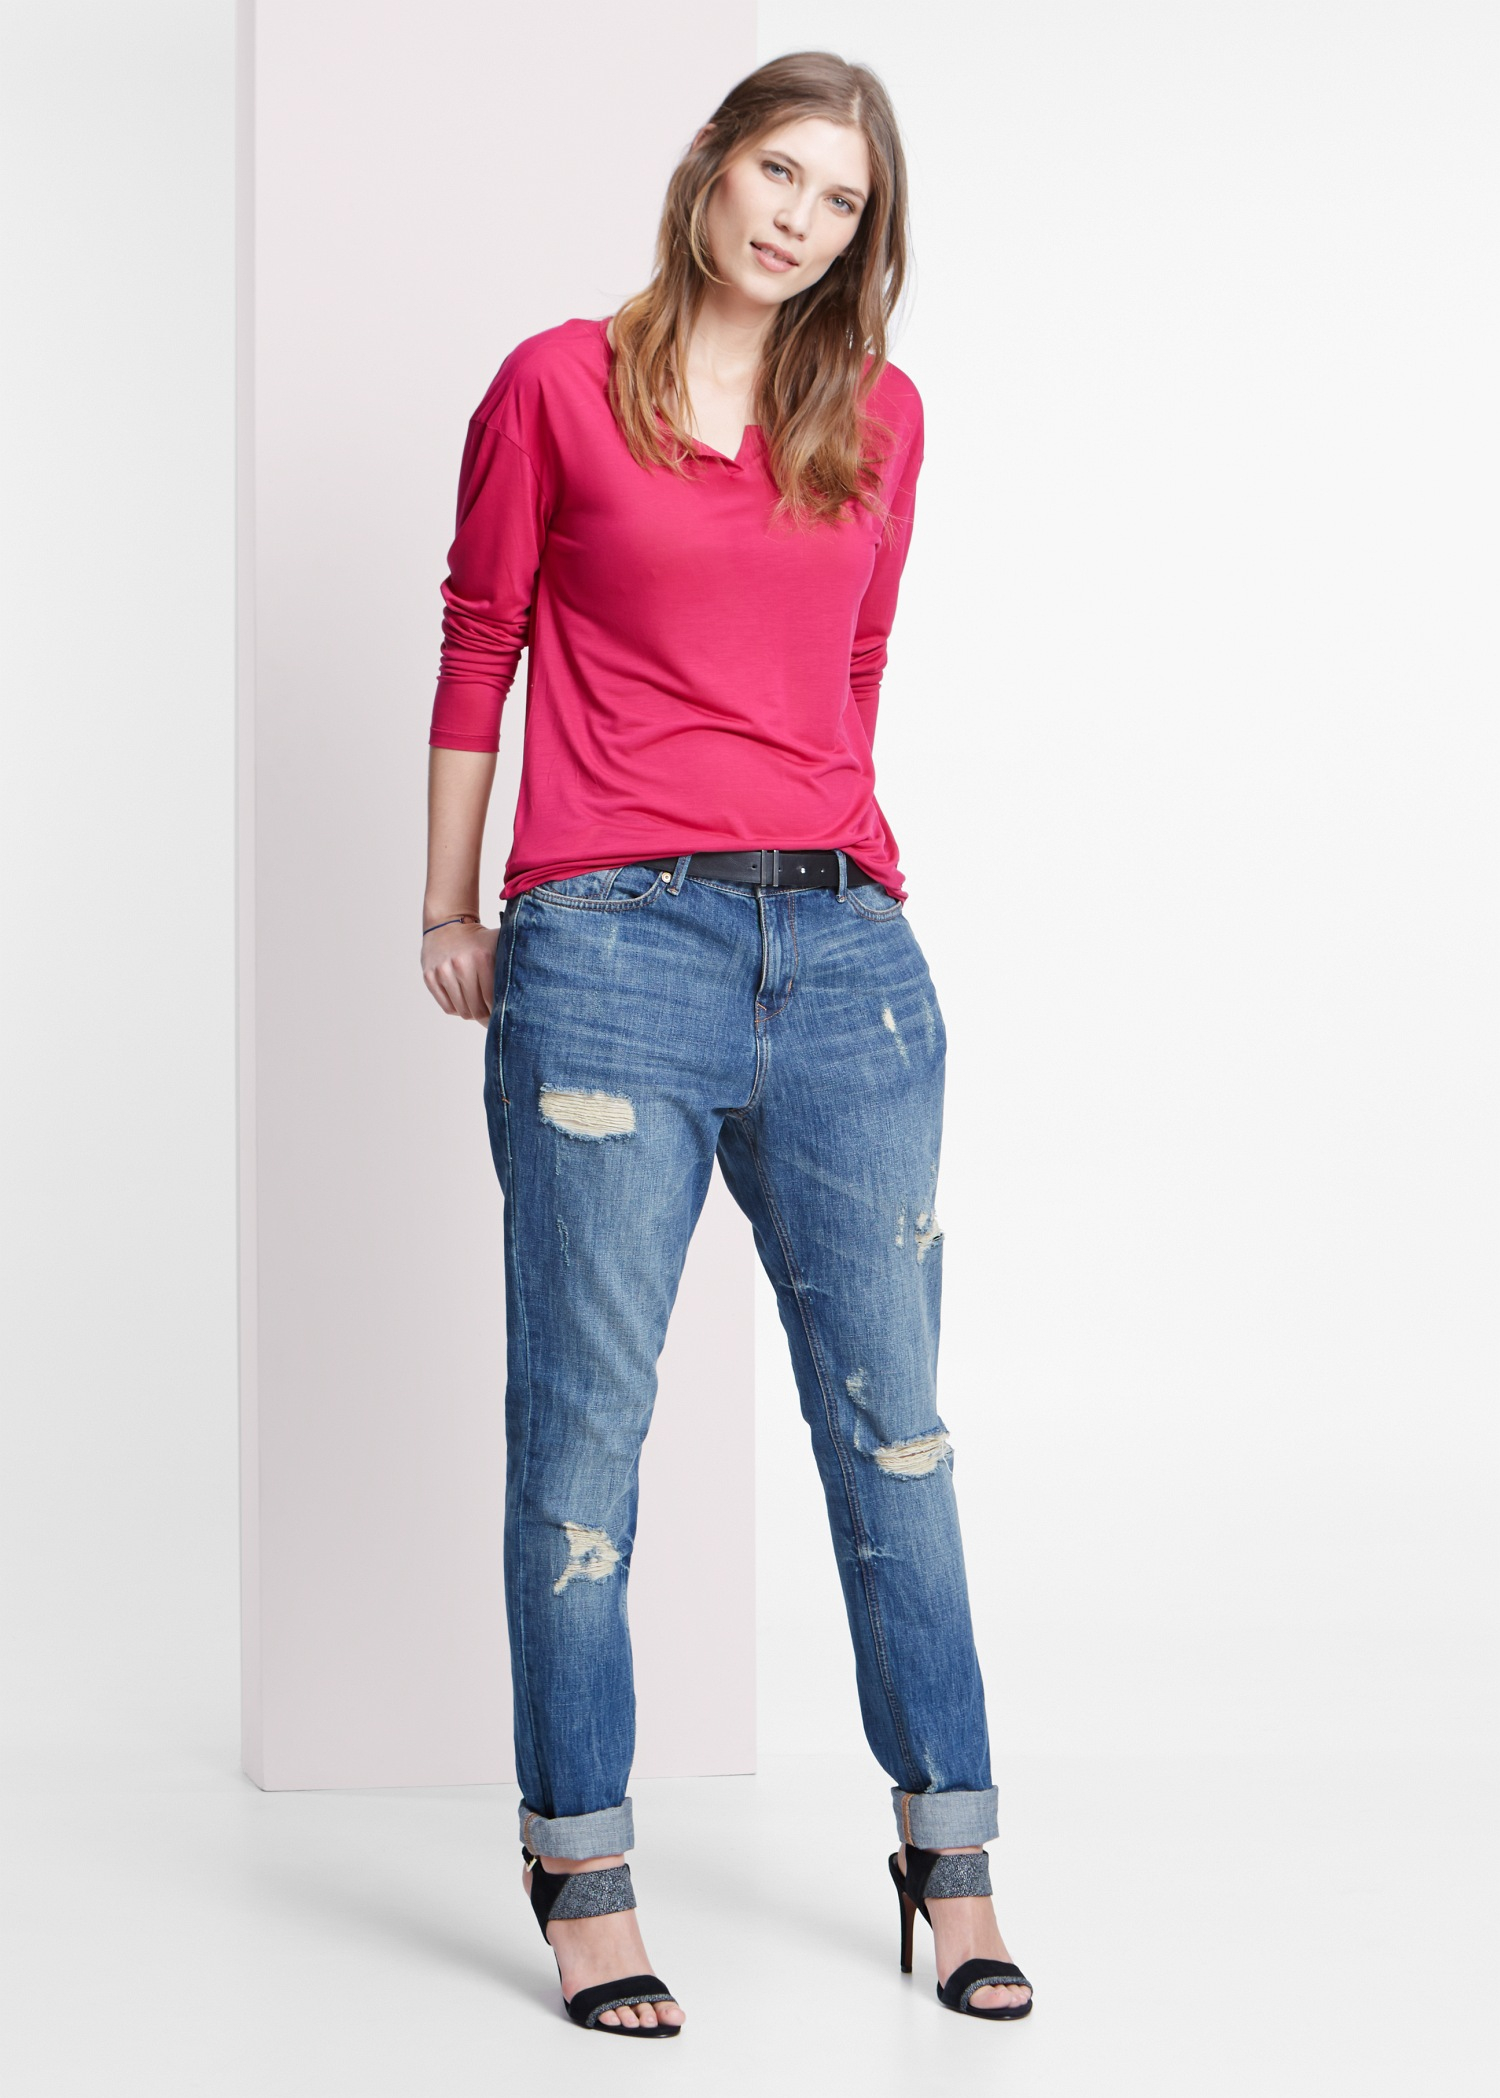 Nordstrom December Coupons, Promos & Sales. To find the latest Nordstrom coupon codes and sales, just follow this link to the website to browse their current offerings.